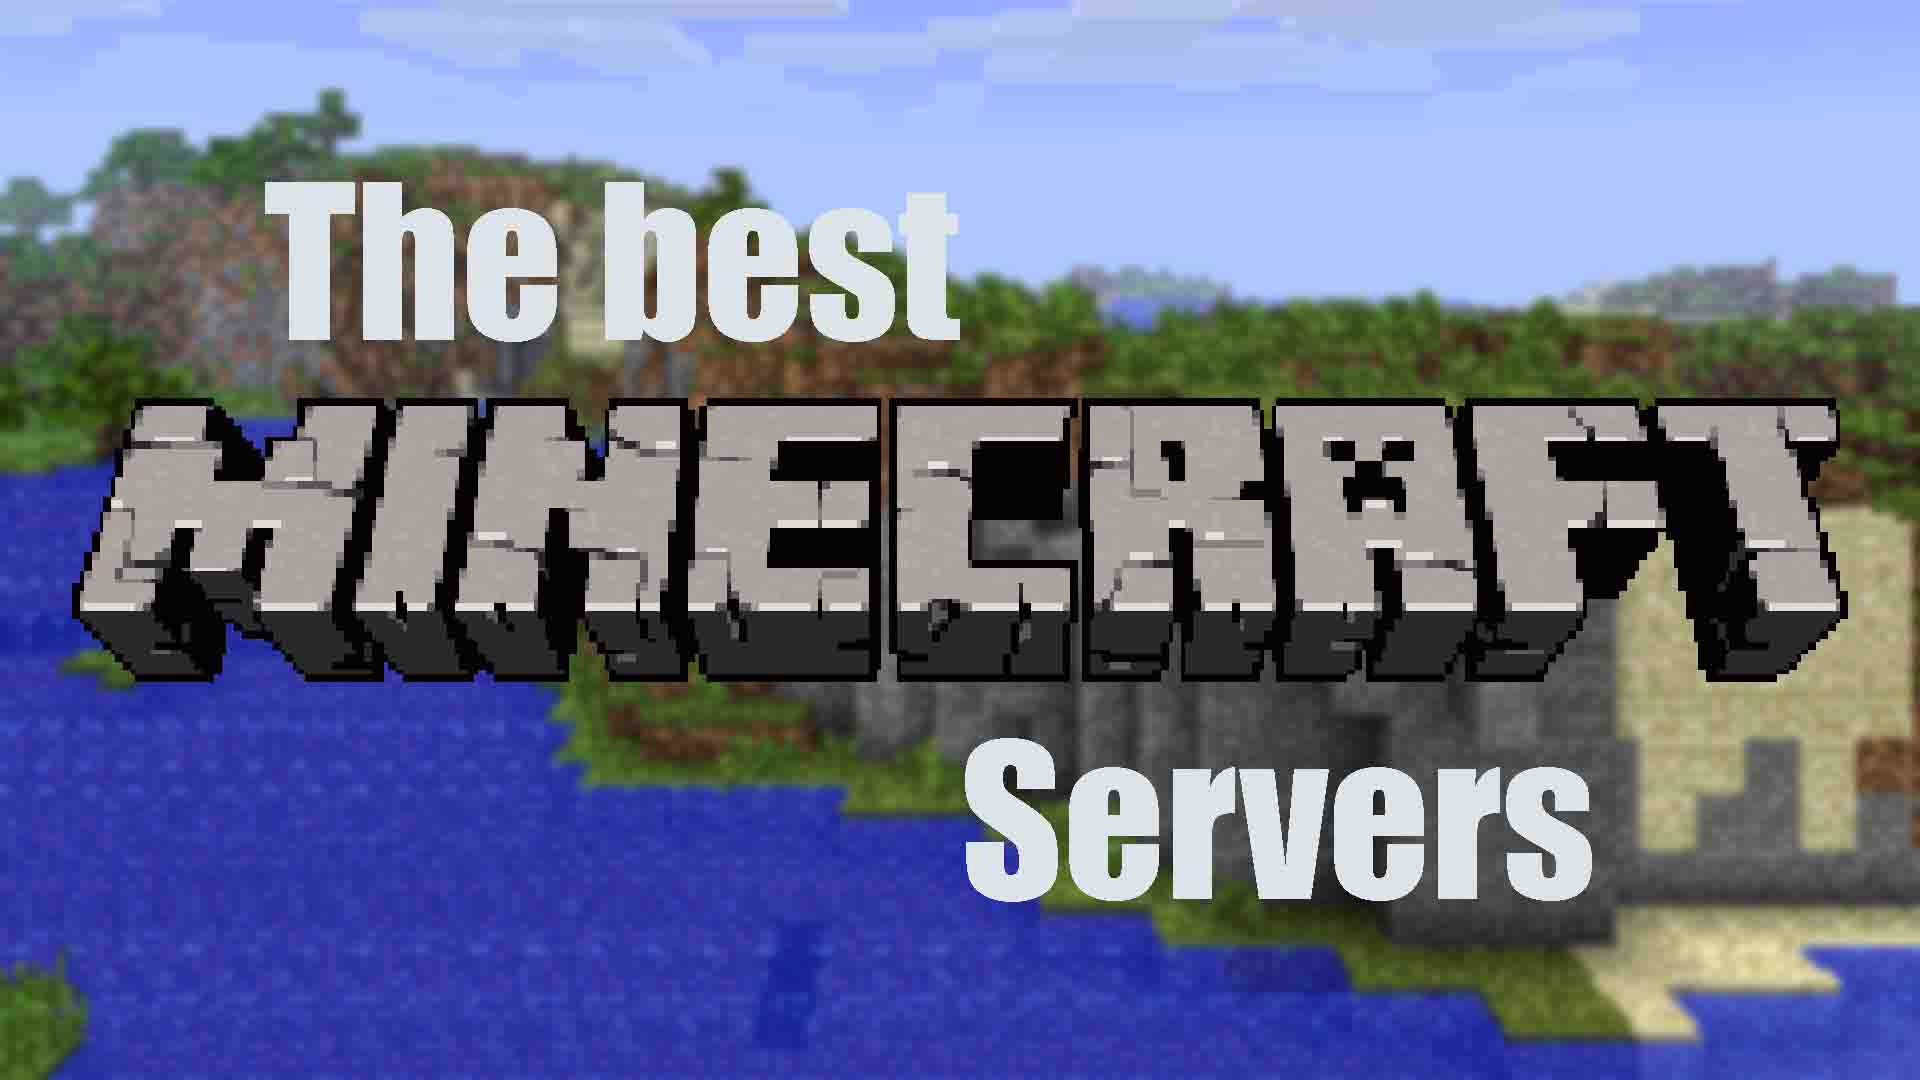 The best servers for Minecraft